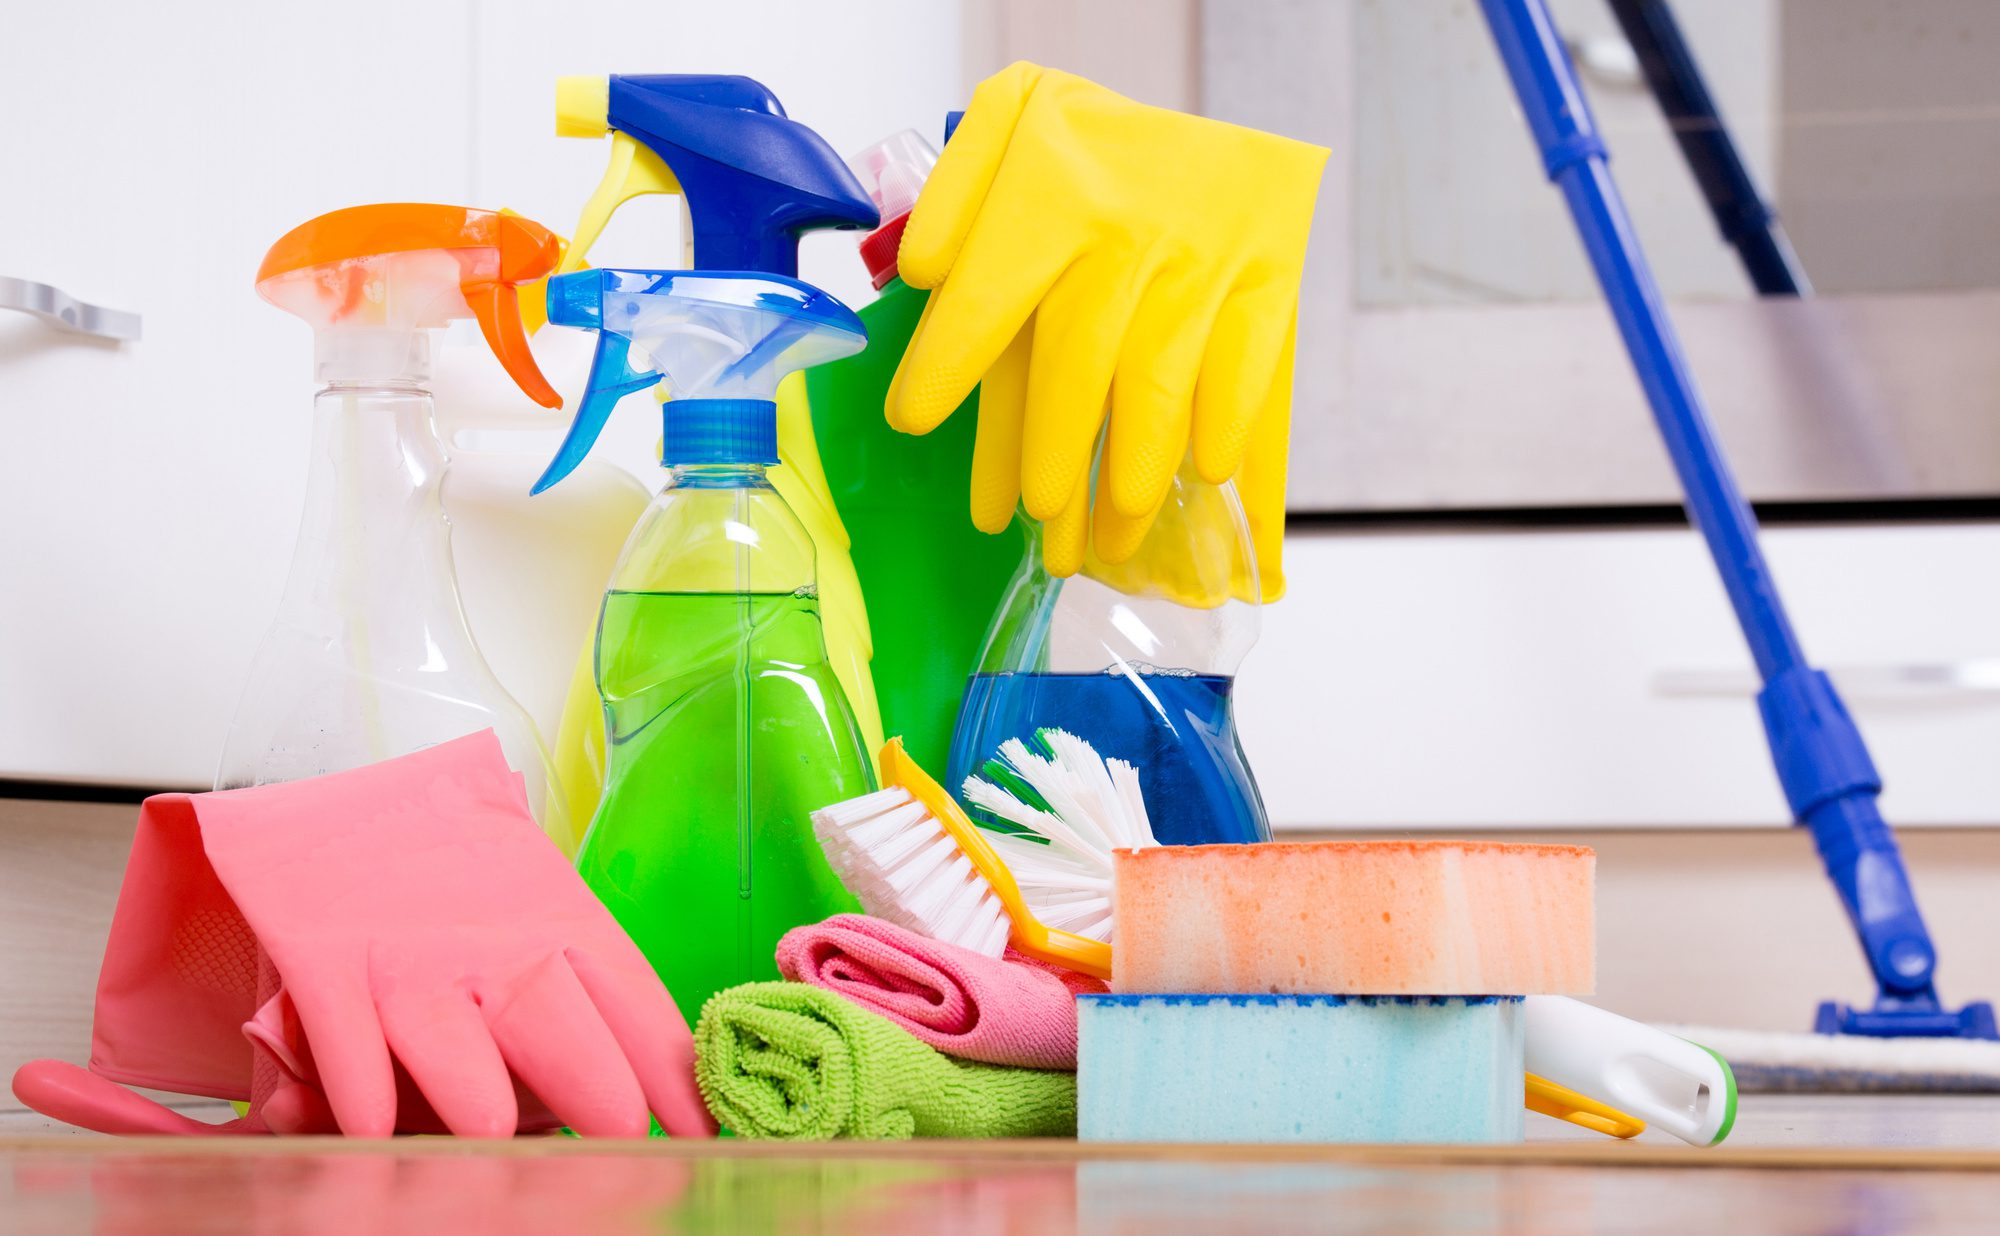 Primavera Cleaning - Cleaning Service, Madison, WI